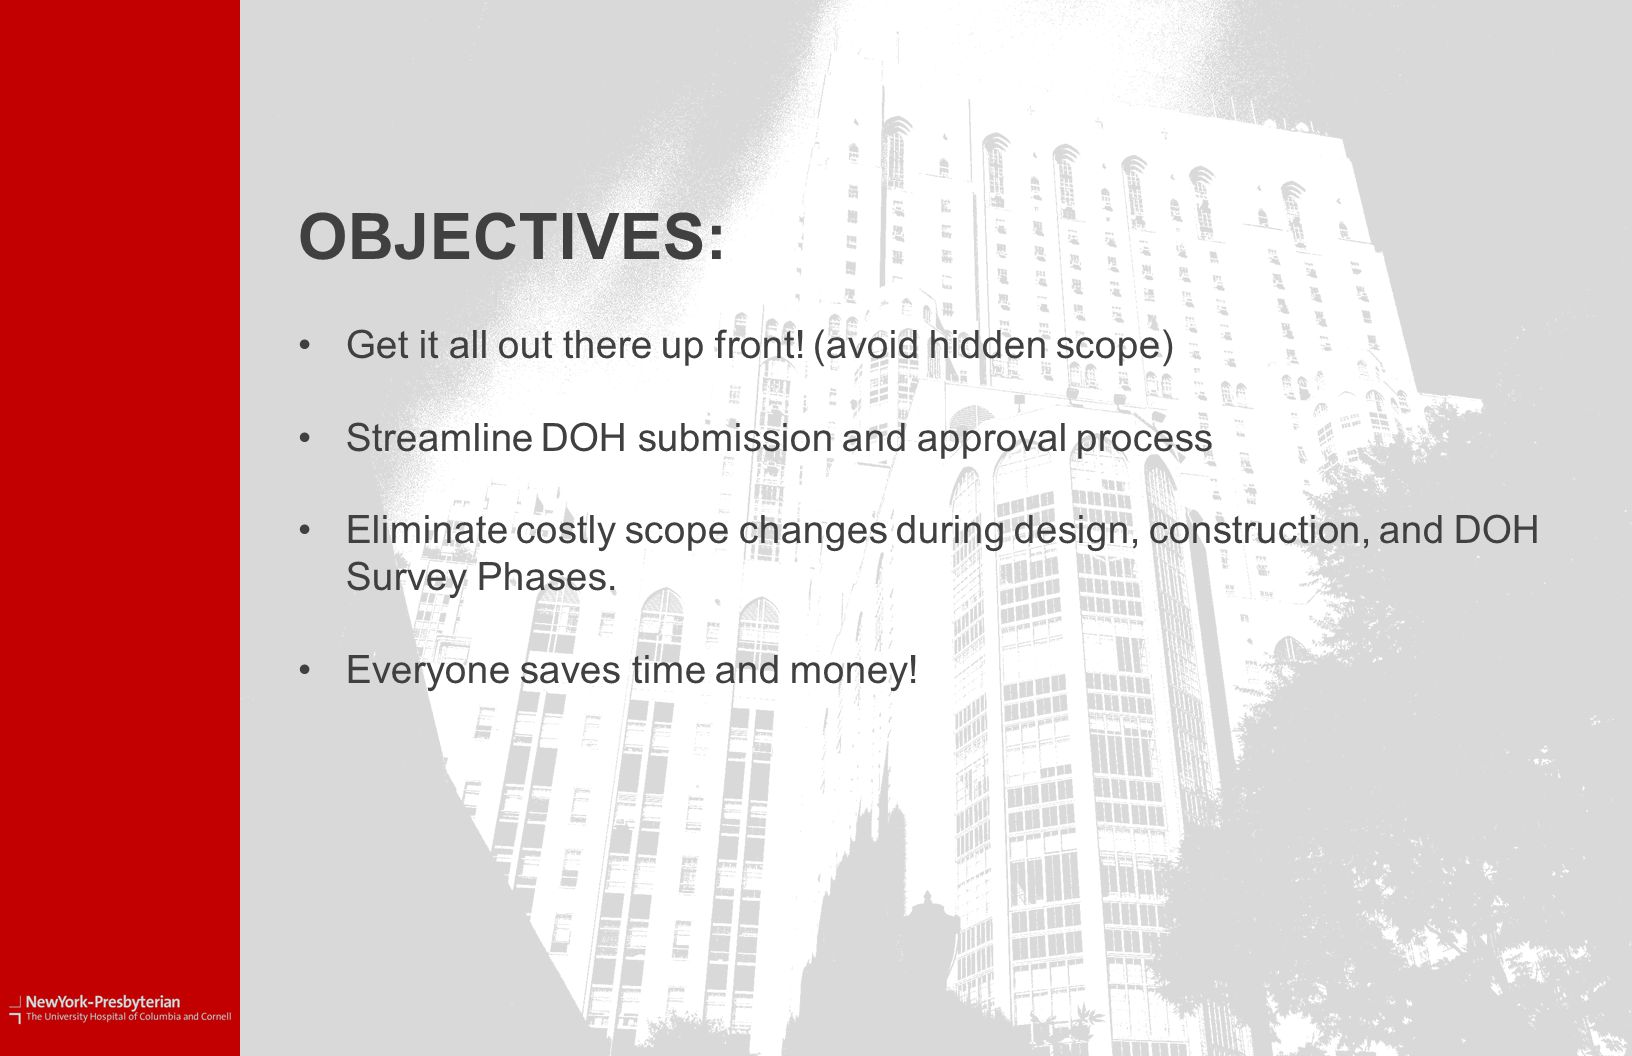 OBJECTIVES: Get it all out there up front.